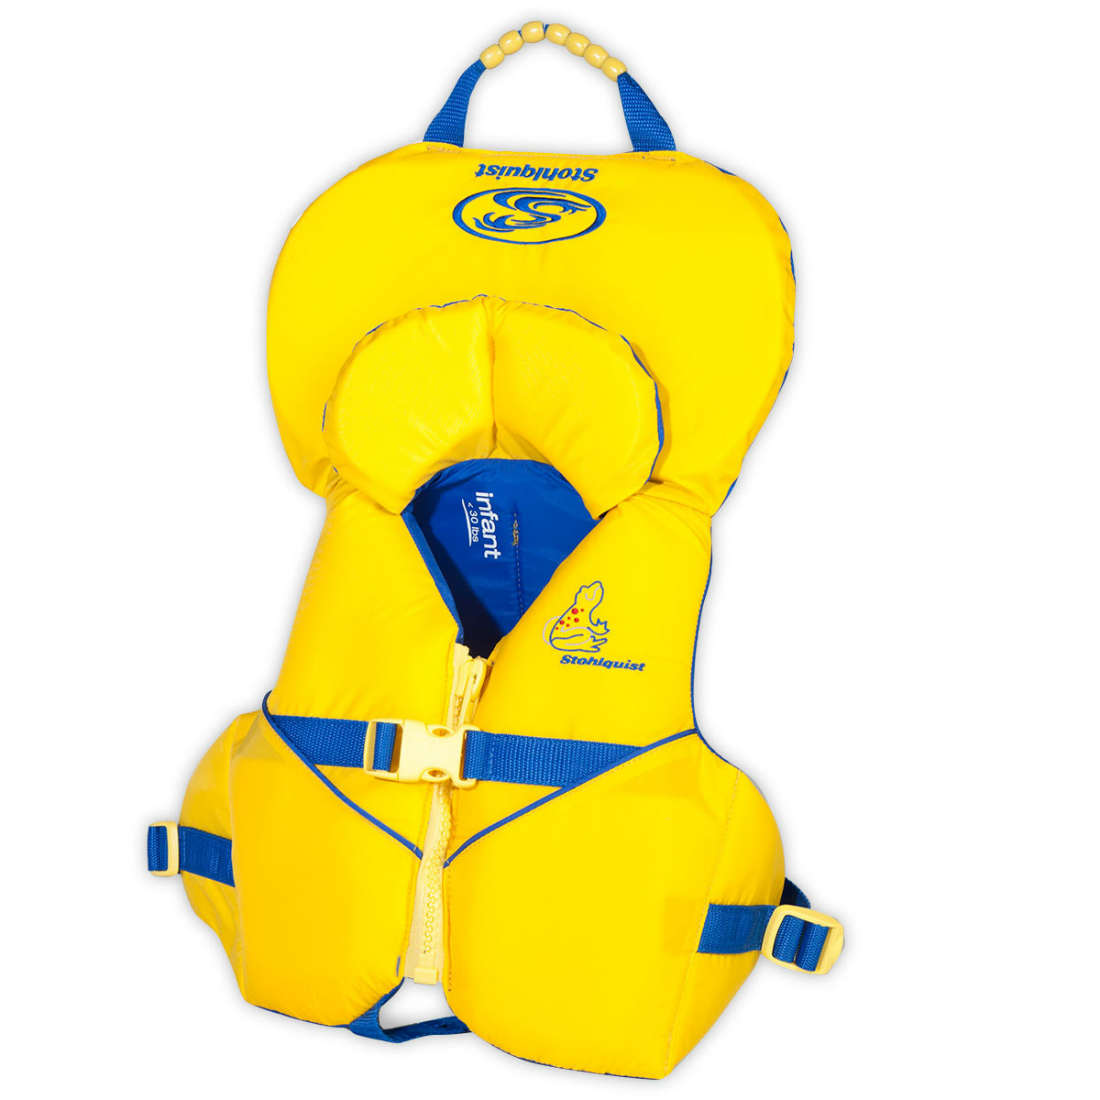 4de7df11a7f Stohlquist Unisex Infant Toddler Nemo Infant Life Jacket ...